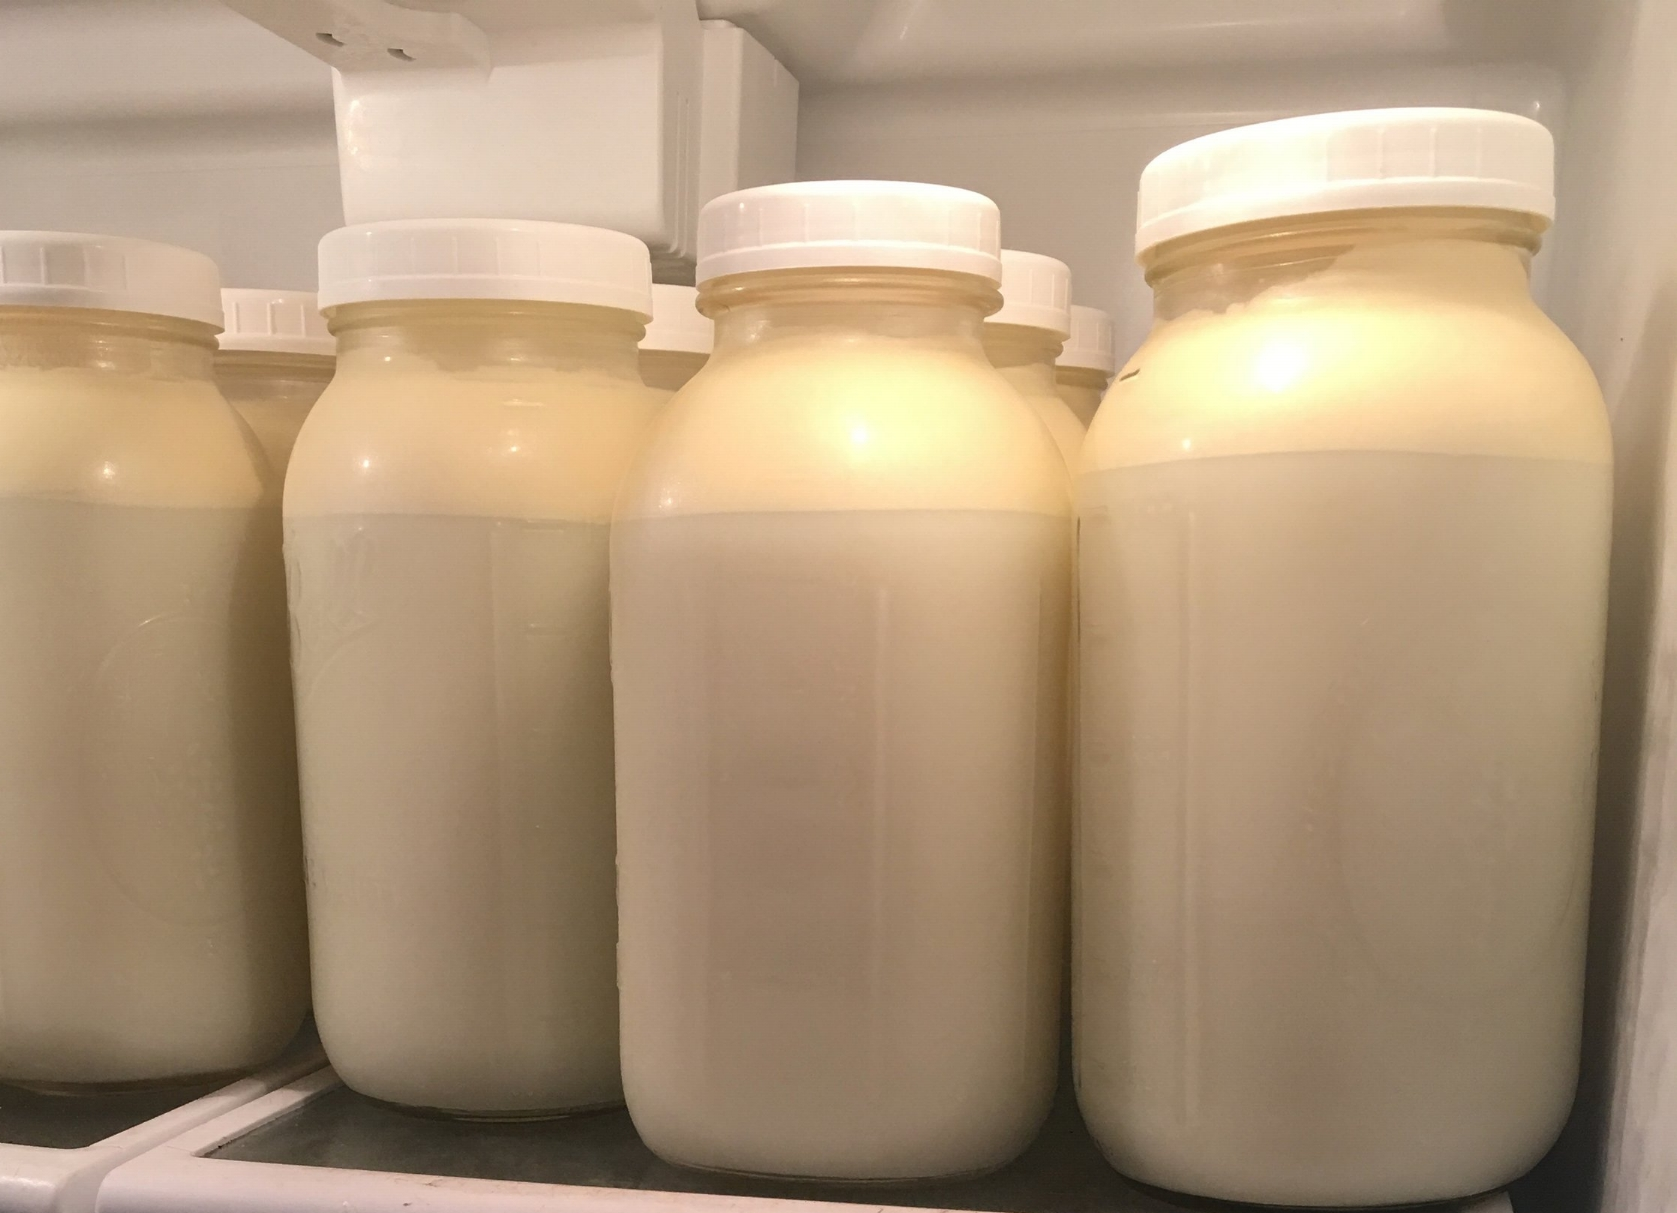 Raw Milk - As part owner of the herd, you can have farm fresh, wholesome, raw milk for your family.